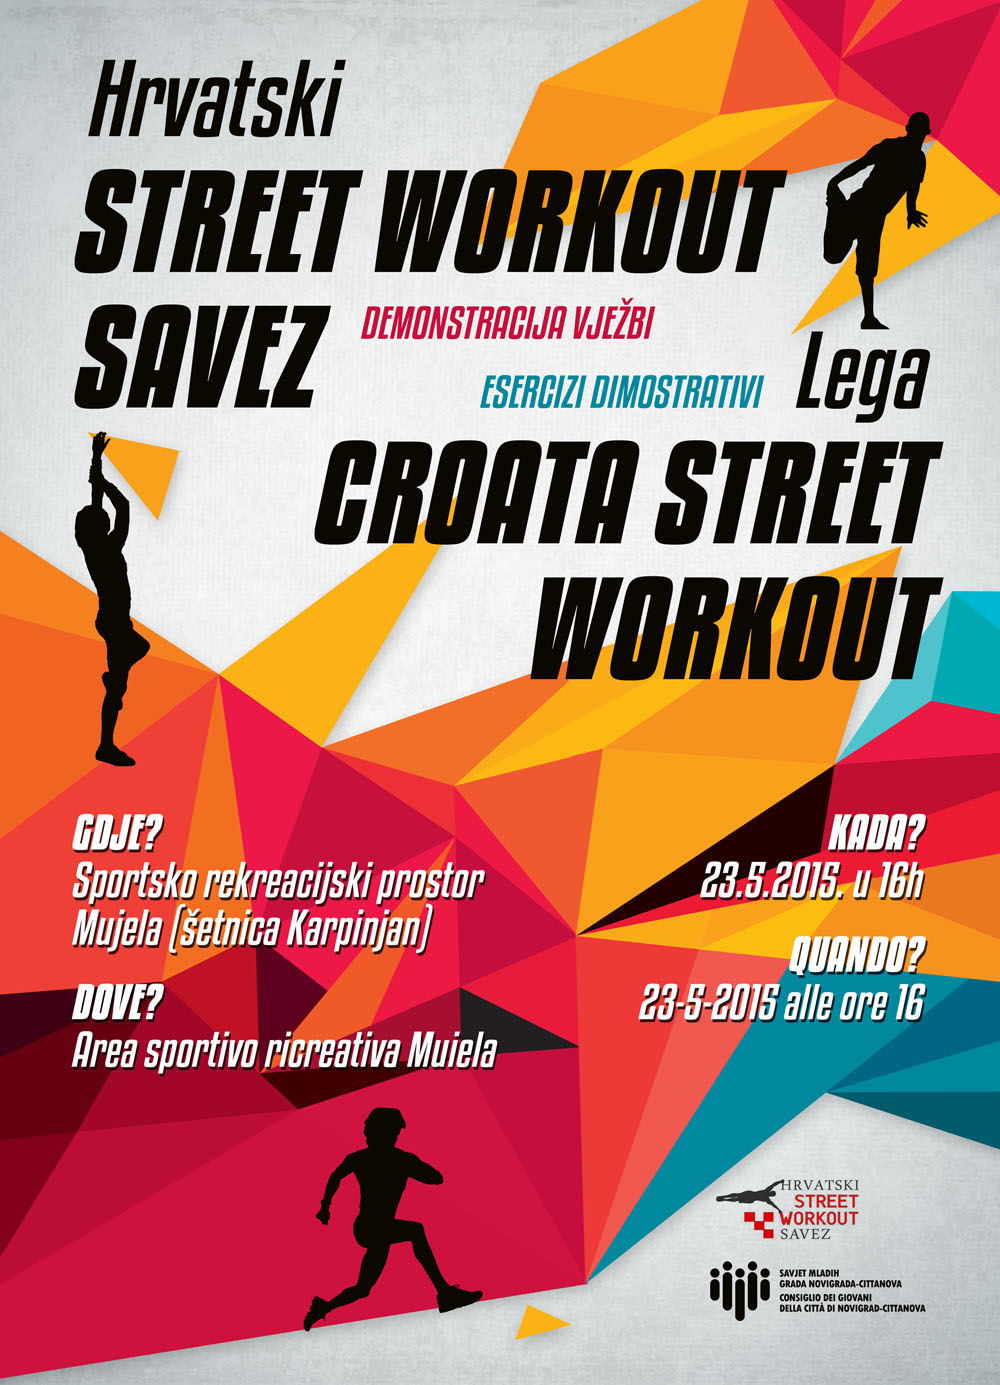 http://www.novigrad.hr/demonstracija_vjezhbi_na_sreet_workout_poligonu